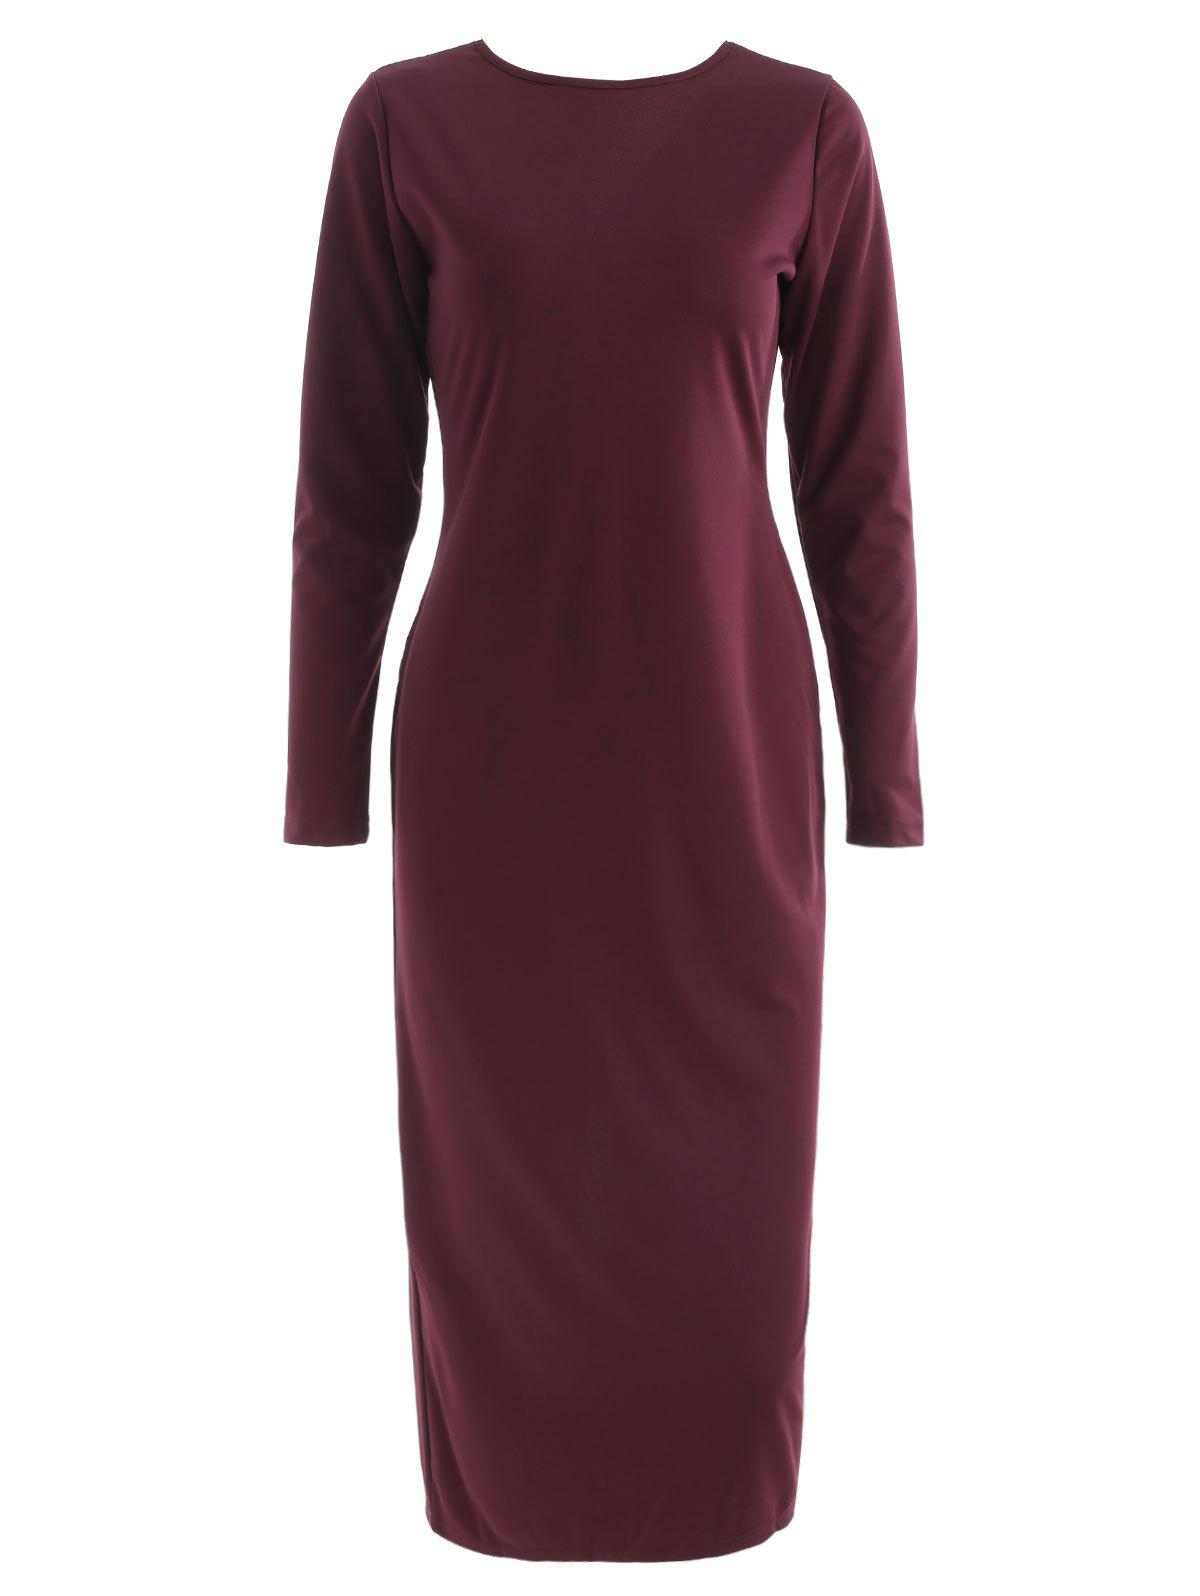 Long Sleeve Zip Up Pencil Dress - RED WINE L